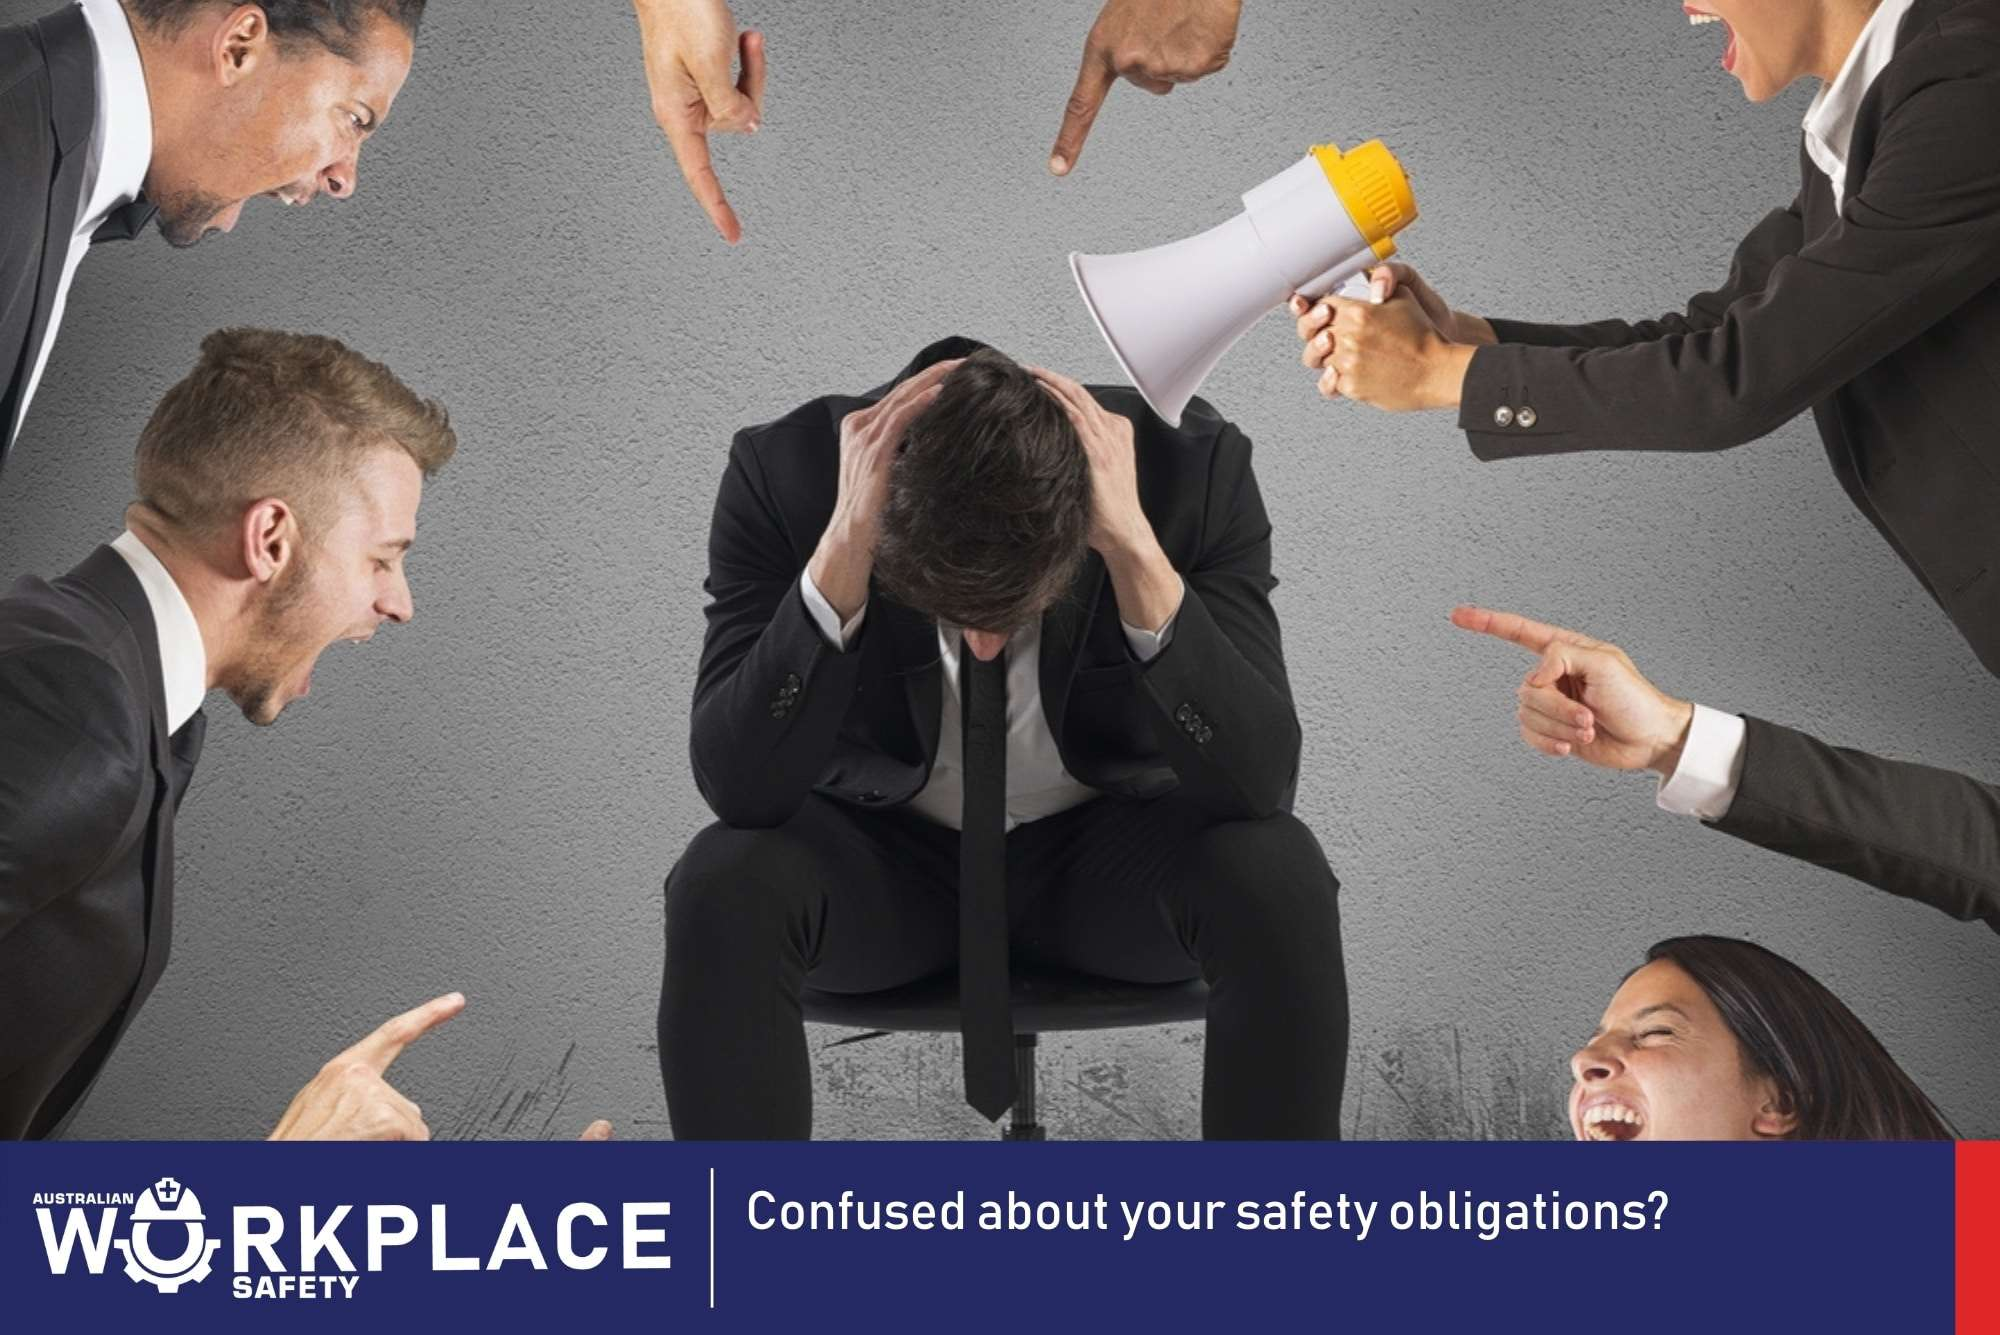 Confused about your safety obligations - Australian Workplace Safety